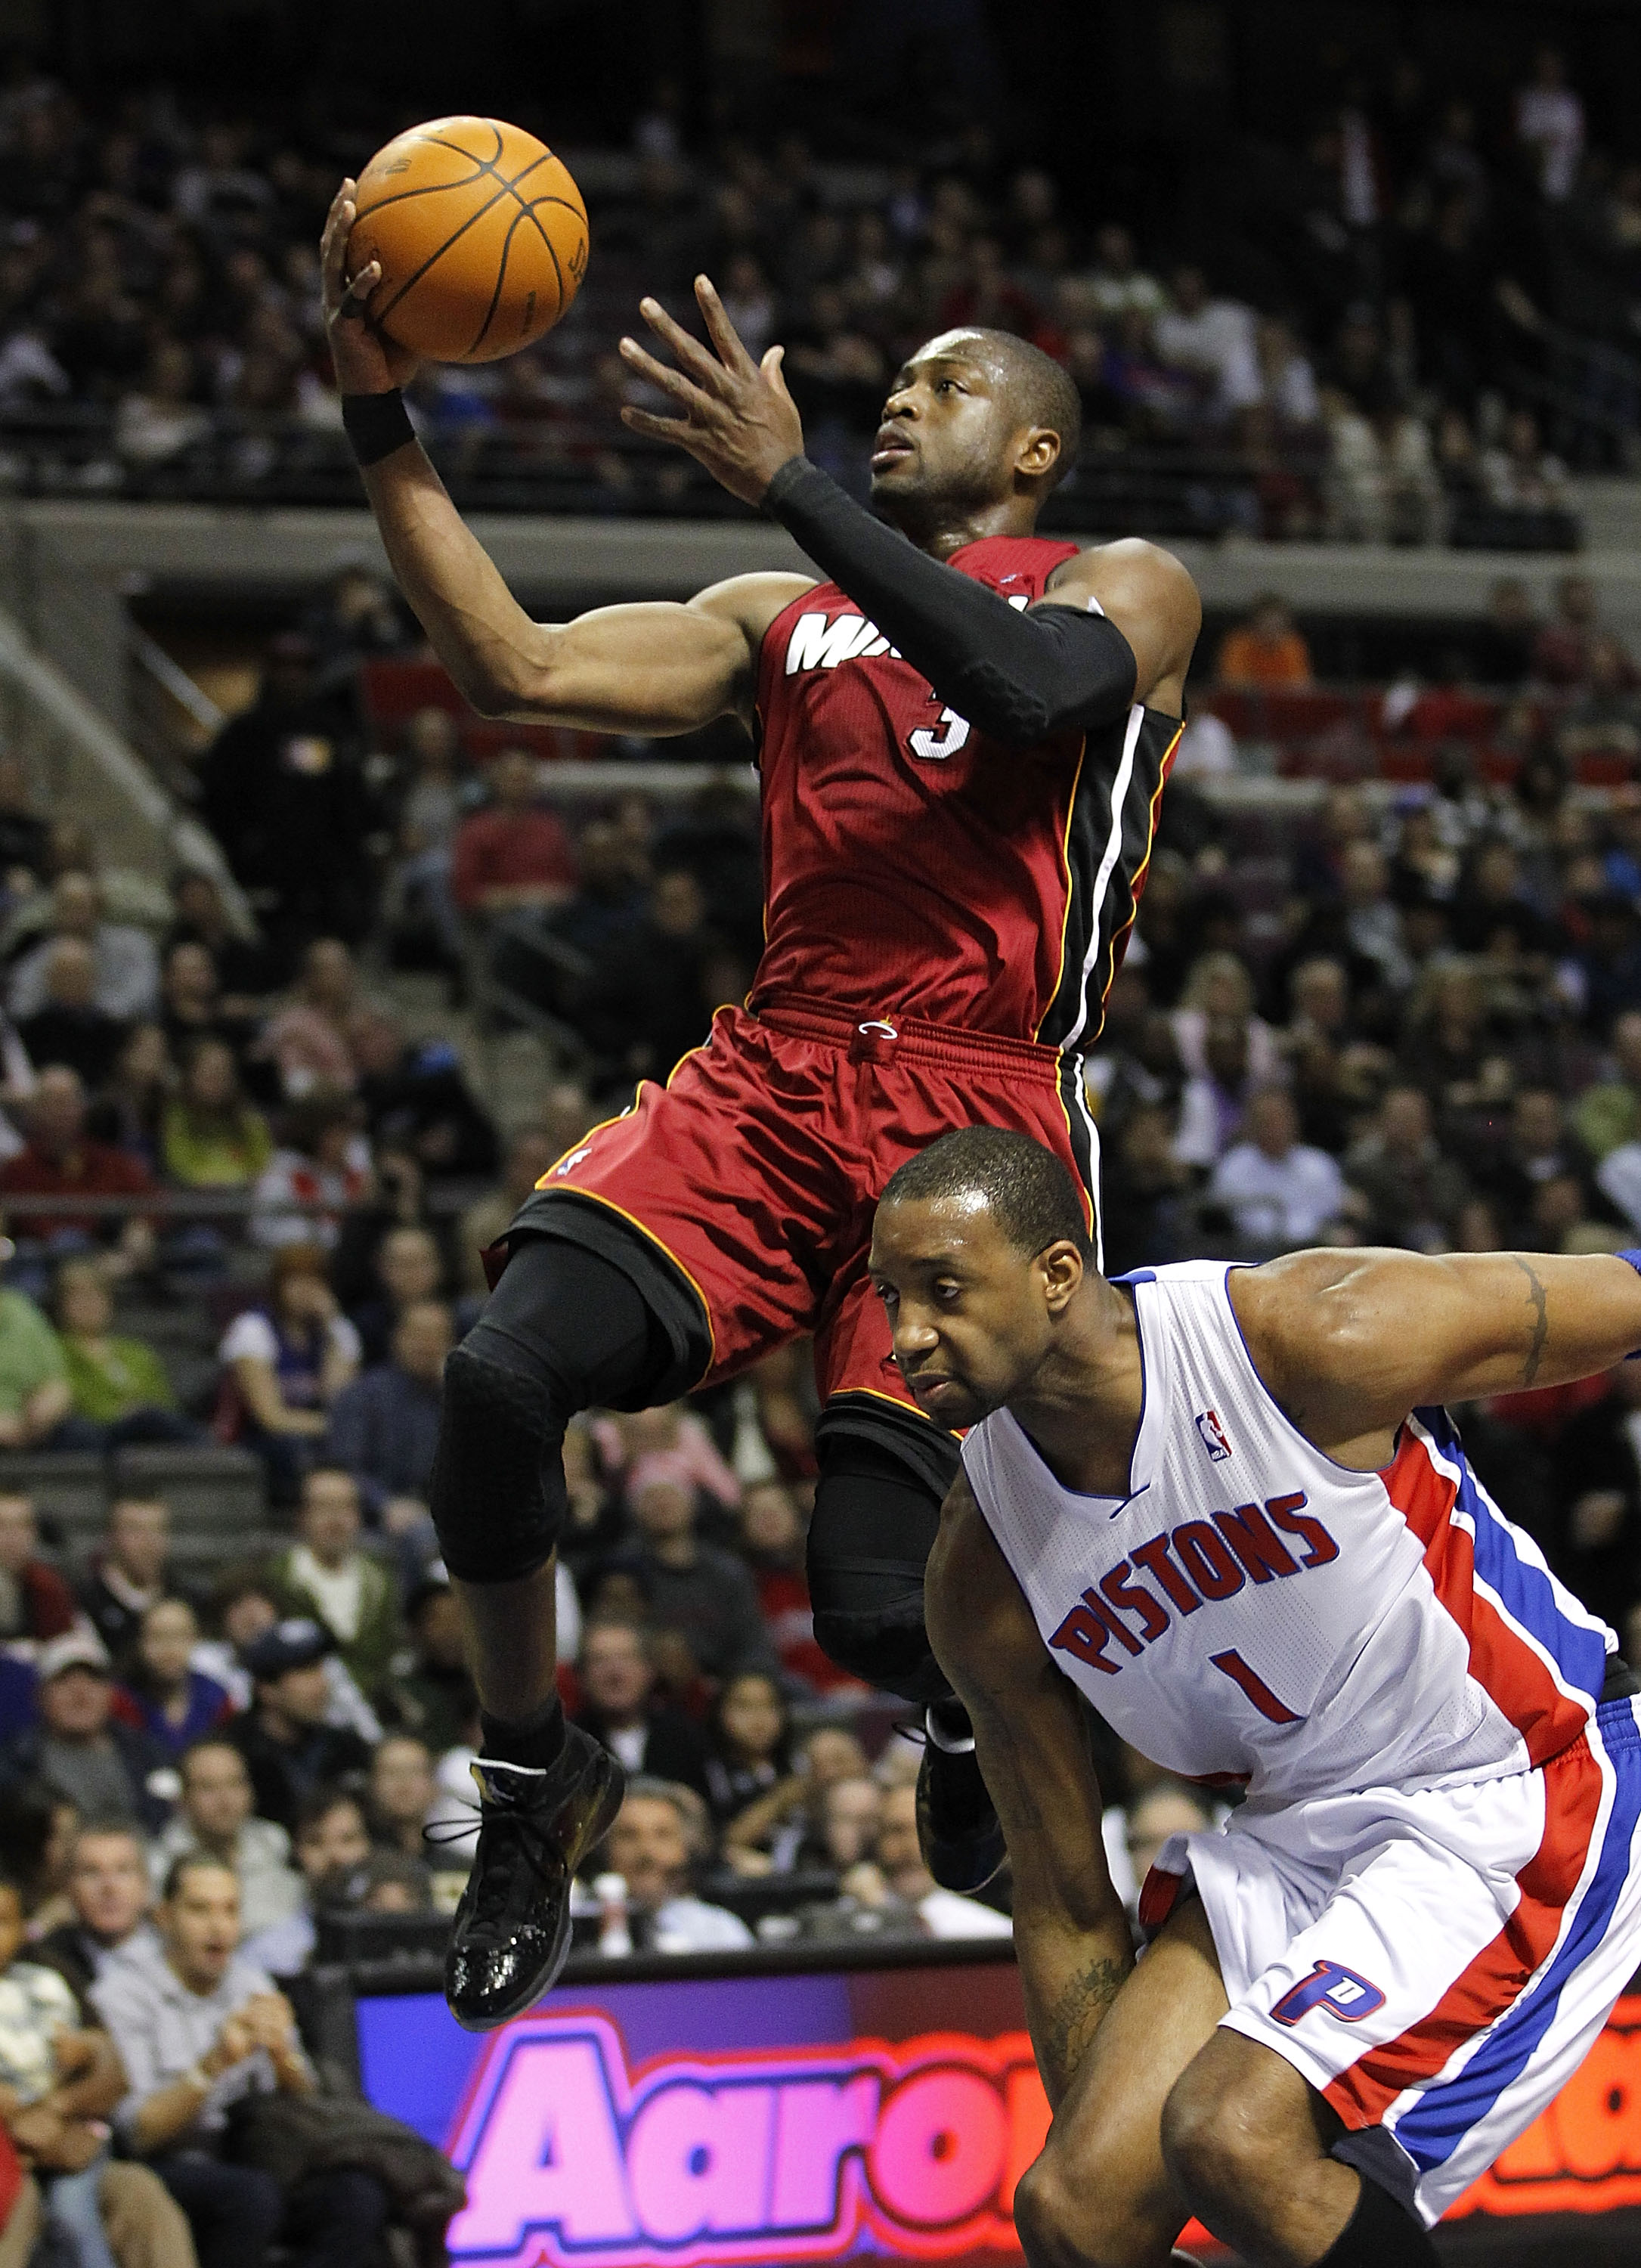 AUBURN HILLS, MI - FEBRUARY 11:  Dwyane Wade #3 of the Miami Heat gets to the basket in front of Tracy McGrady #1 of the Detroit Pistons at The Palace of Auburn Hills on February 11, 2011 in Auburn Hills, Michigan. NOTE TO USER: User expressly acknowledge